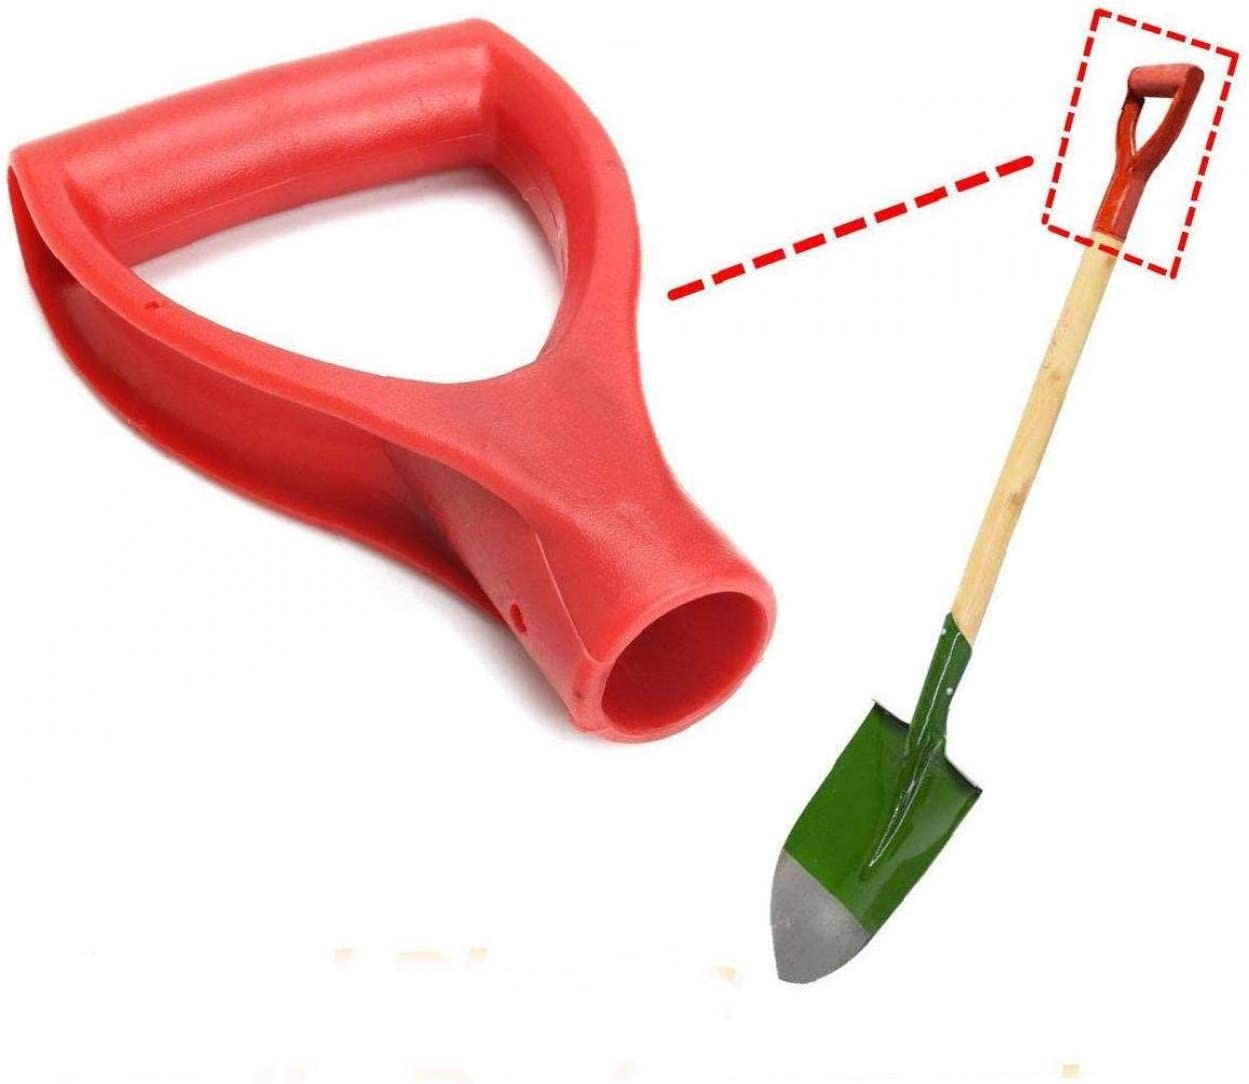 MaylFre Replacement Snow Shovel D Grip Handle Plastic Snow Scoop Handle for Shovels Fork Spade Garden Accessories Red